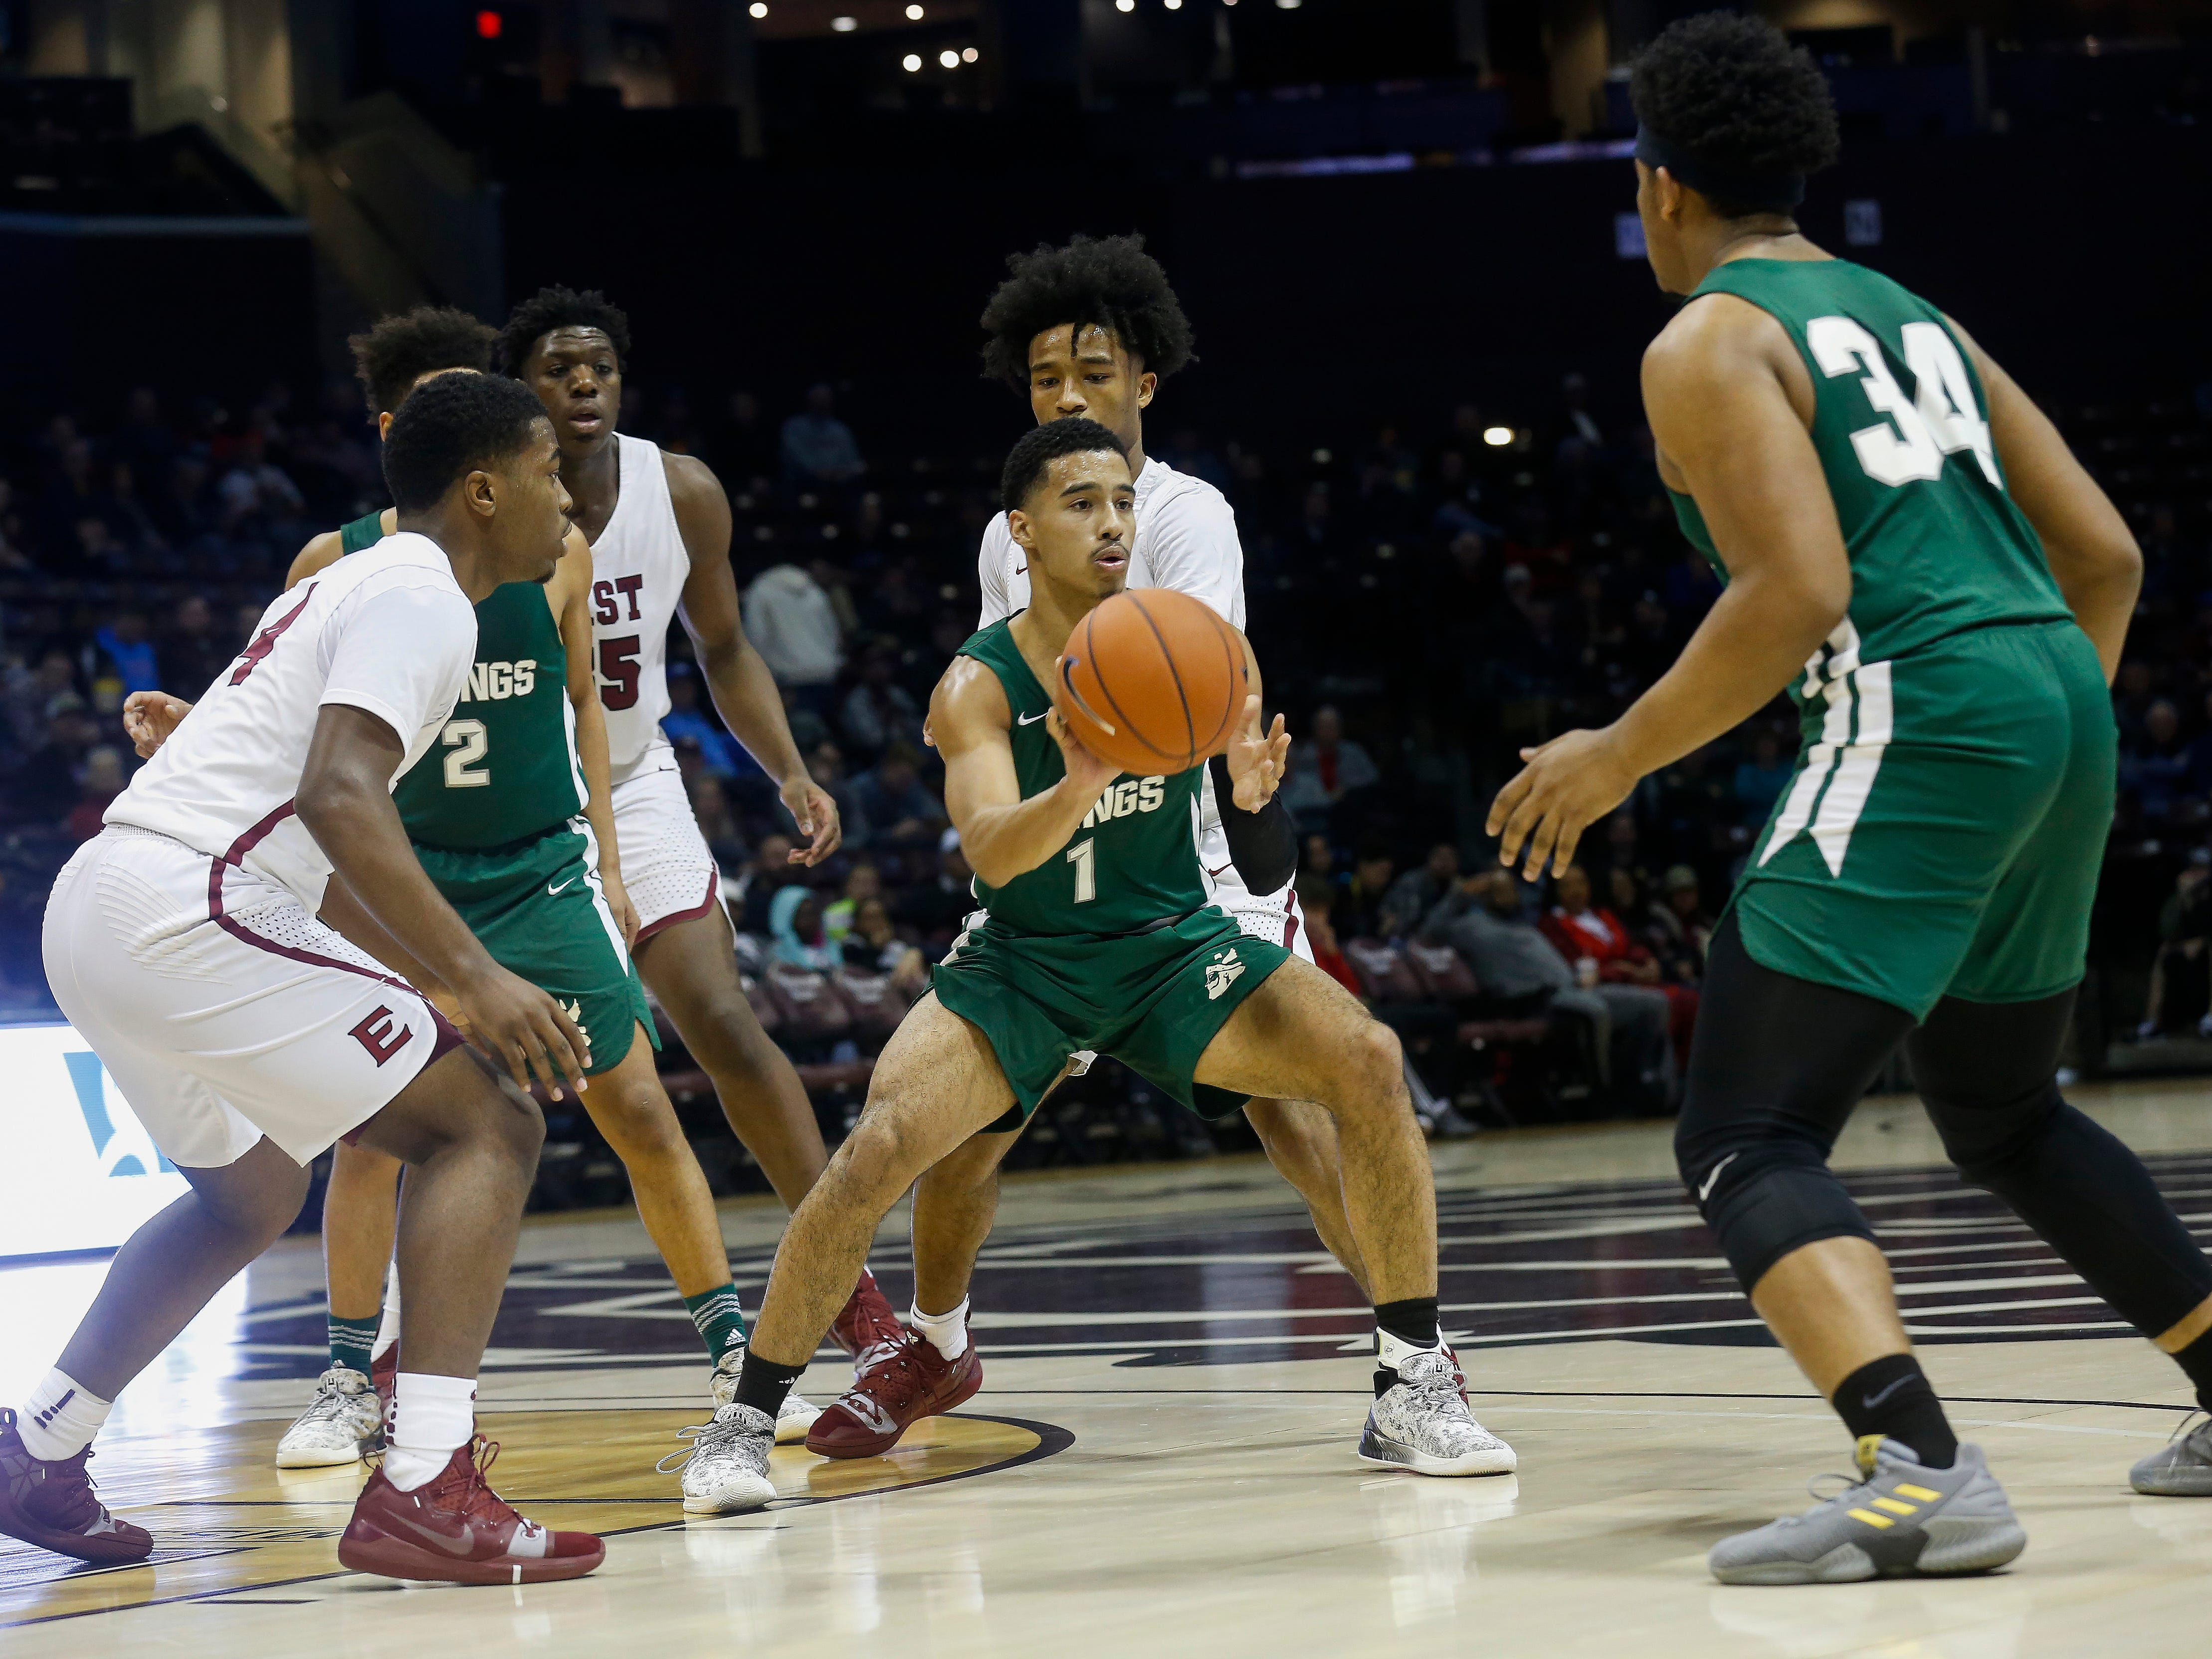 The Parkview Vikings fell to the Memphis East Mustangs 55-41 in the opening game of the Bass Pro Shops Tournament of Champions at JQH Arena on Thursday, Jan. 17, 2019.